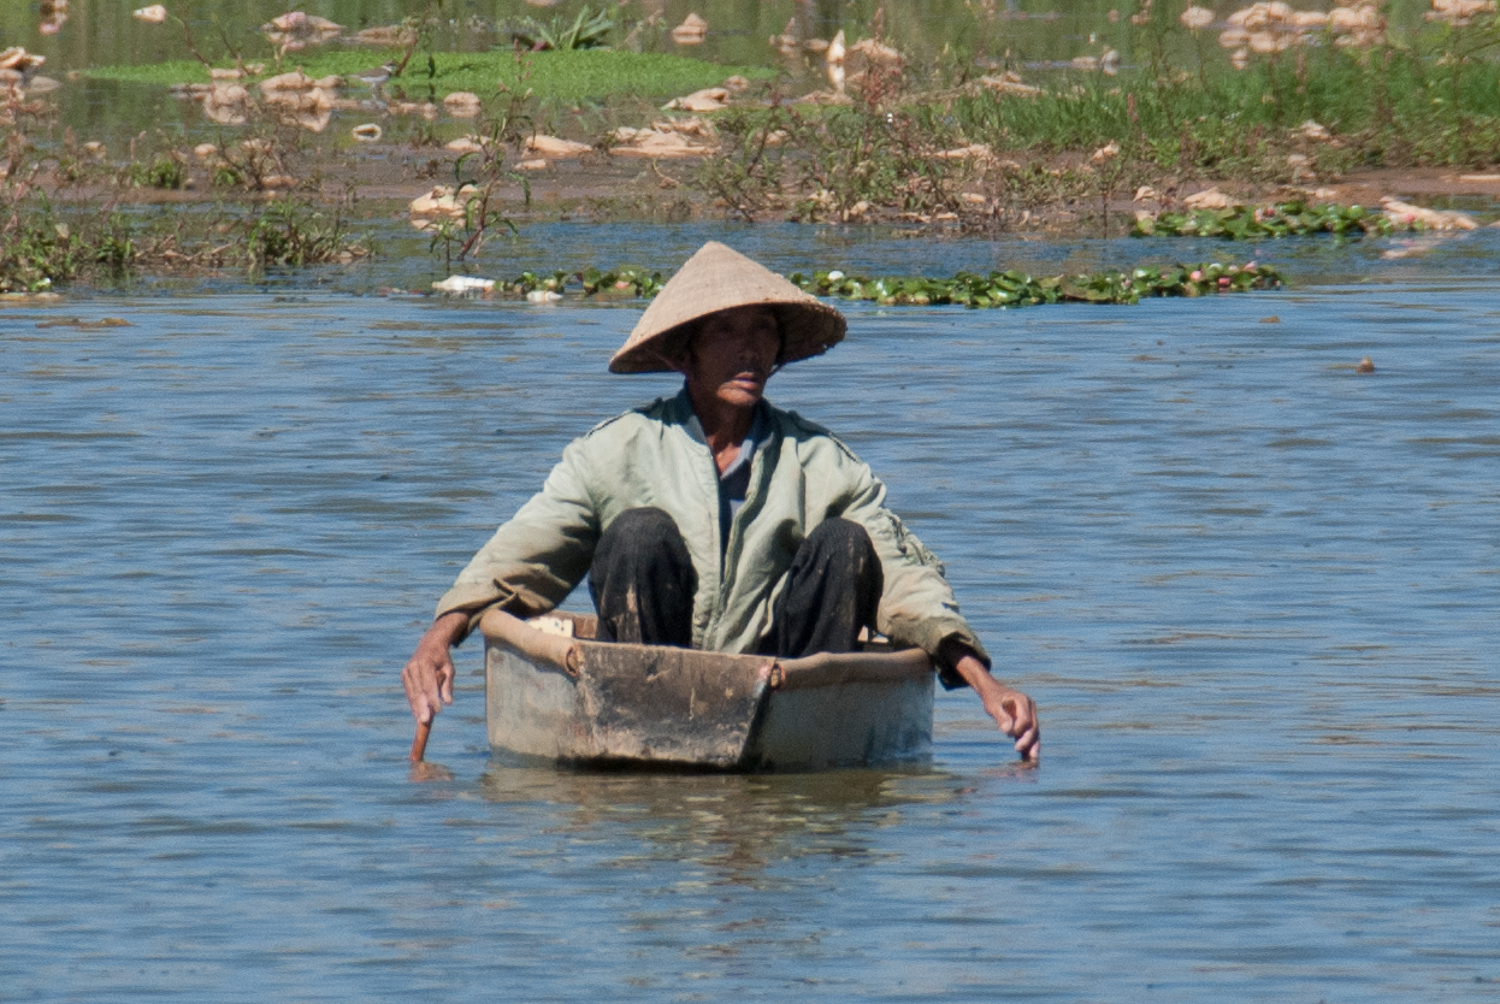 Fisherman wearing Conical Hat